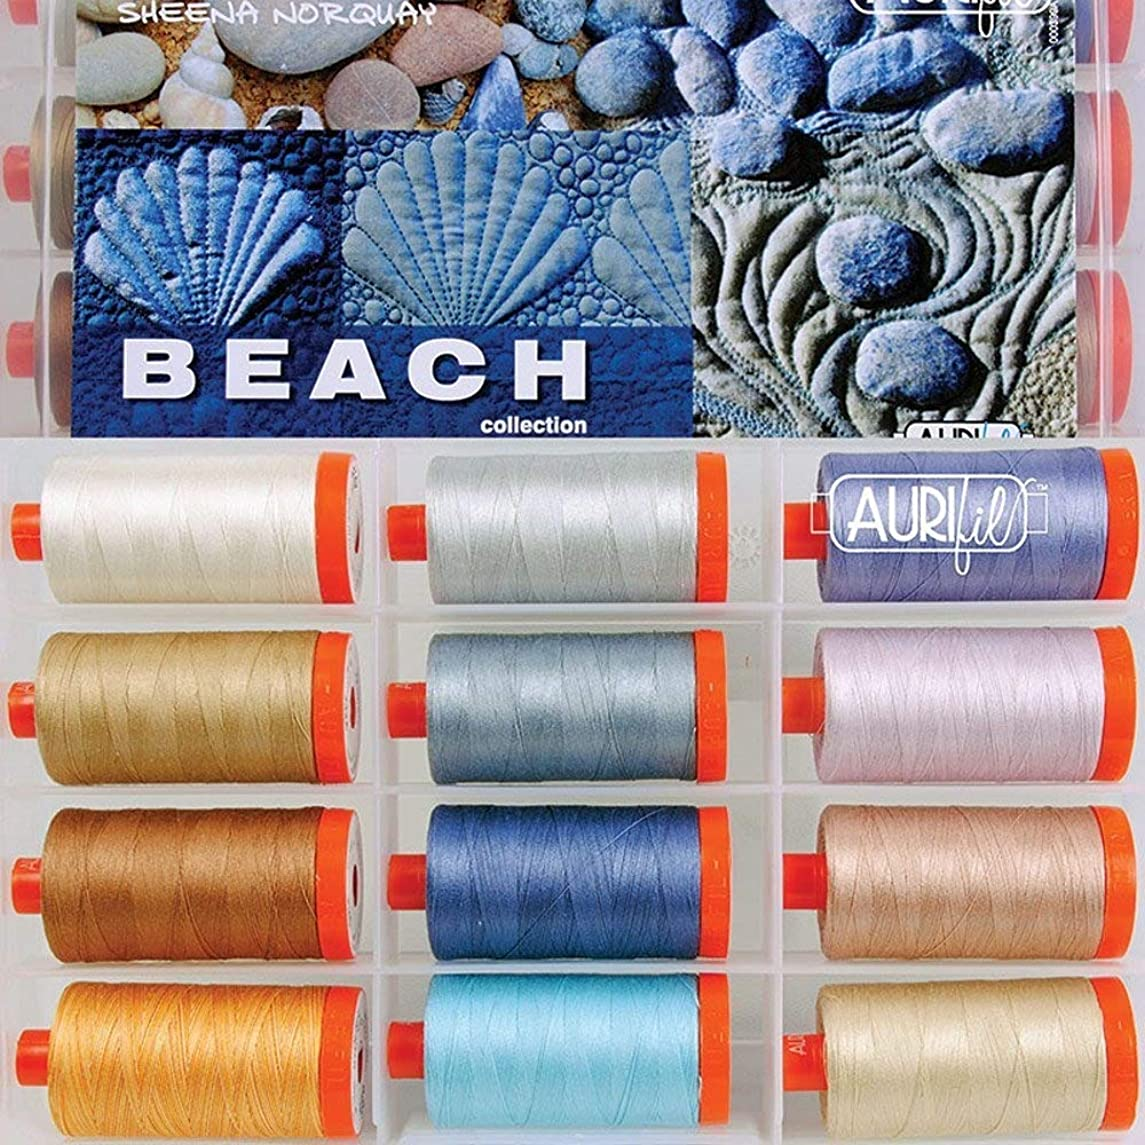 Sheena Norquay Beach Aurifil Thread Kit 12 Large Spools 50 Weight SN50BC12